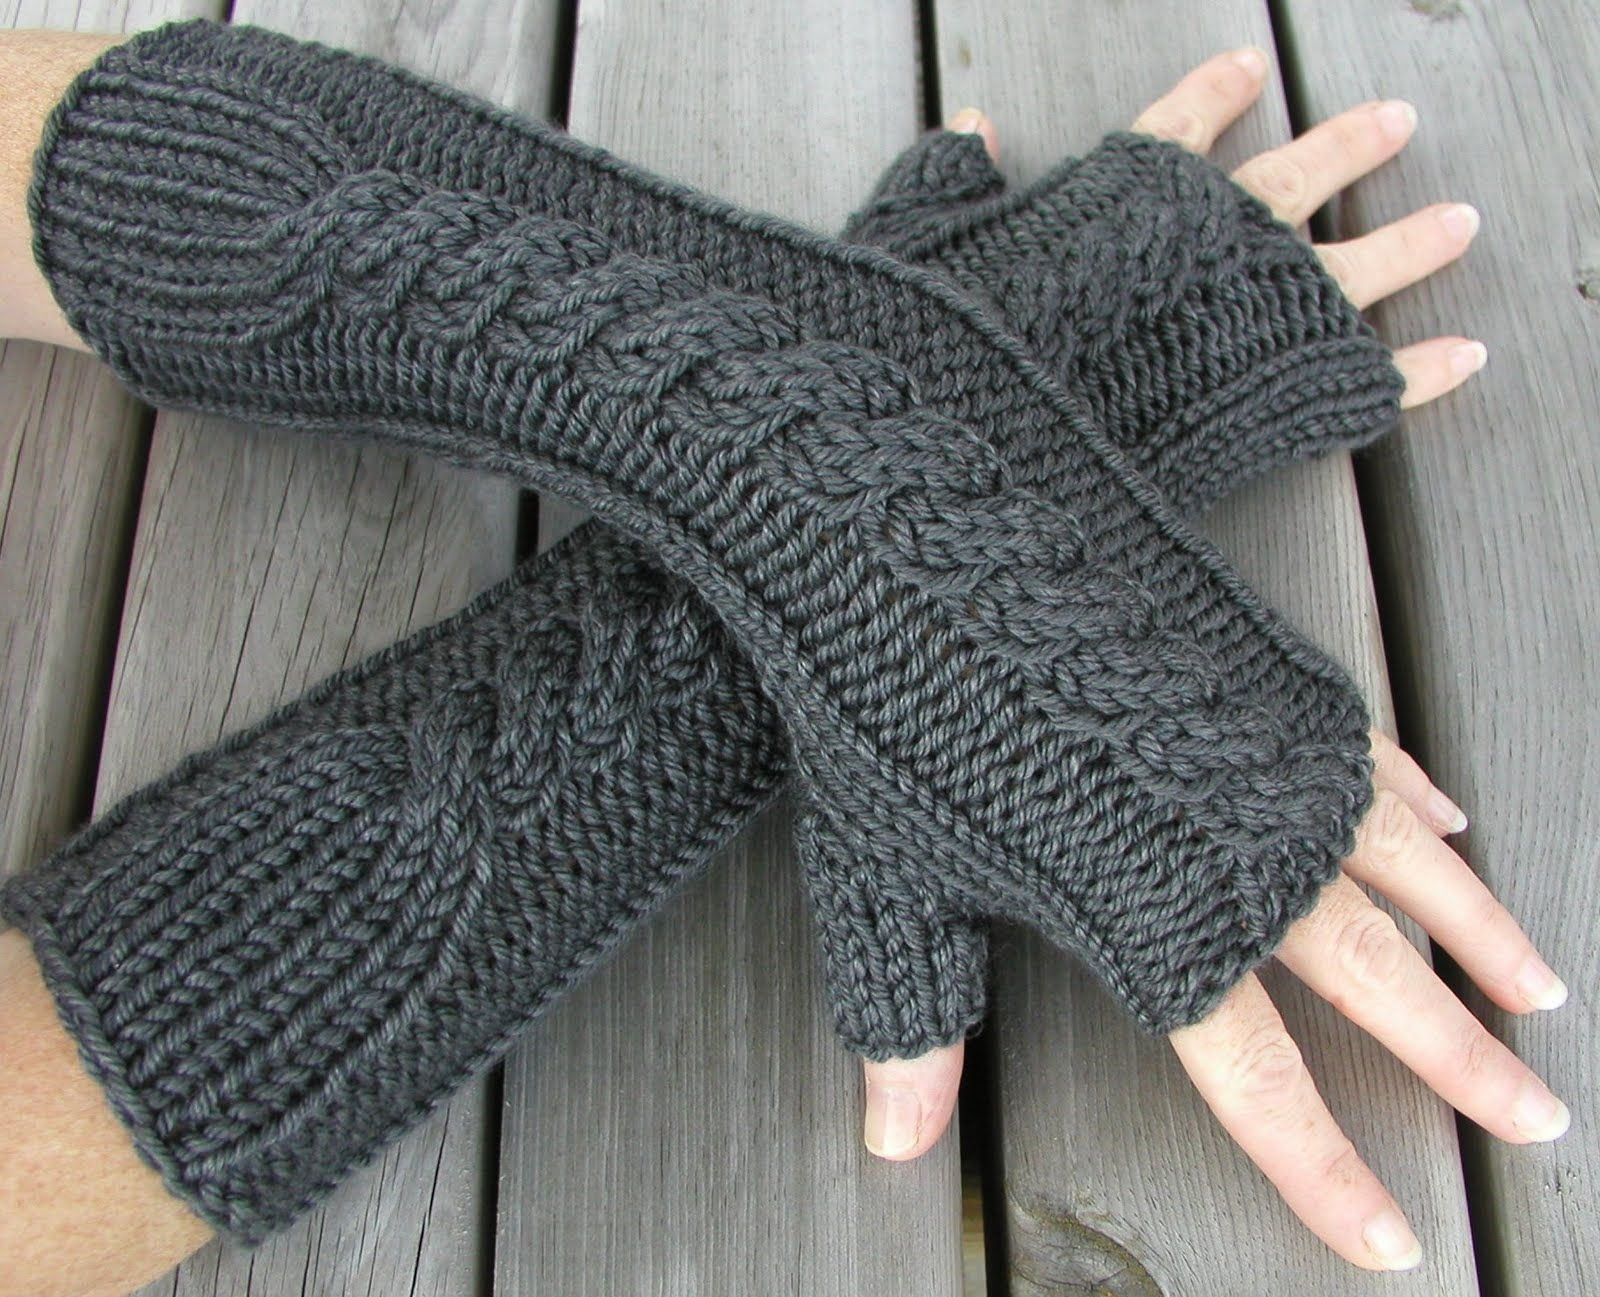 Opera Gloves - these look simple enough and I bet I can badger ...